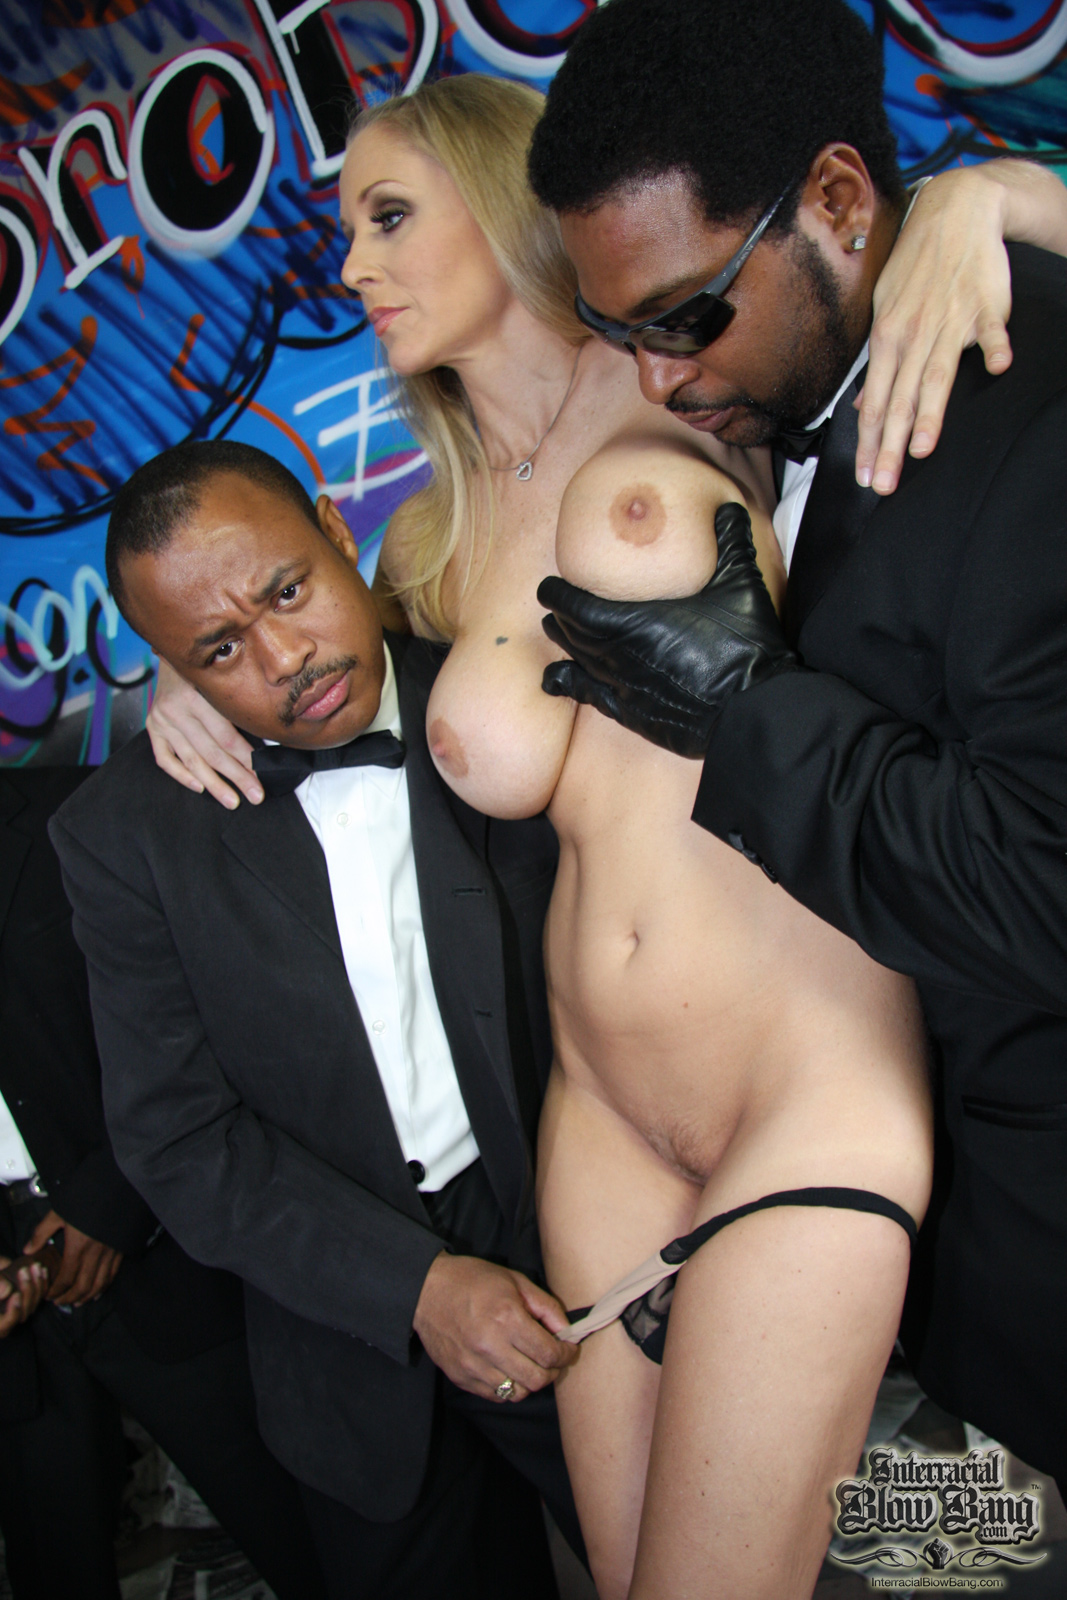 Nasty interracial guys creamy gangbang